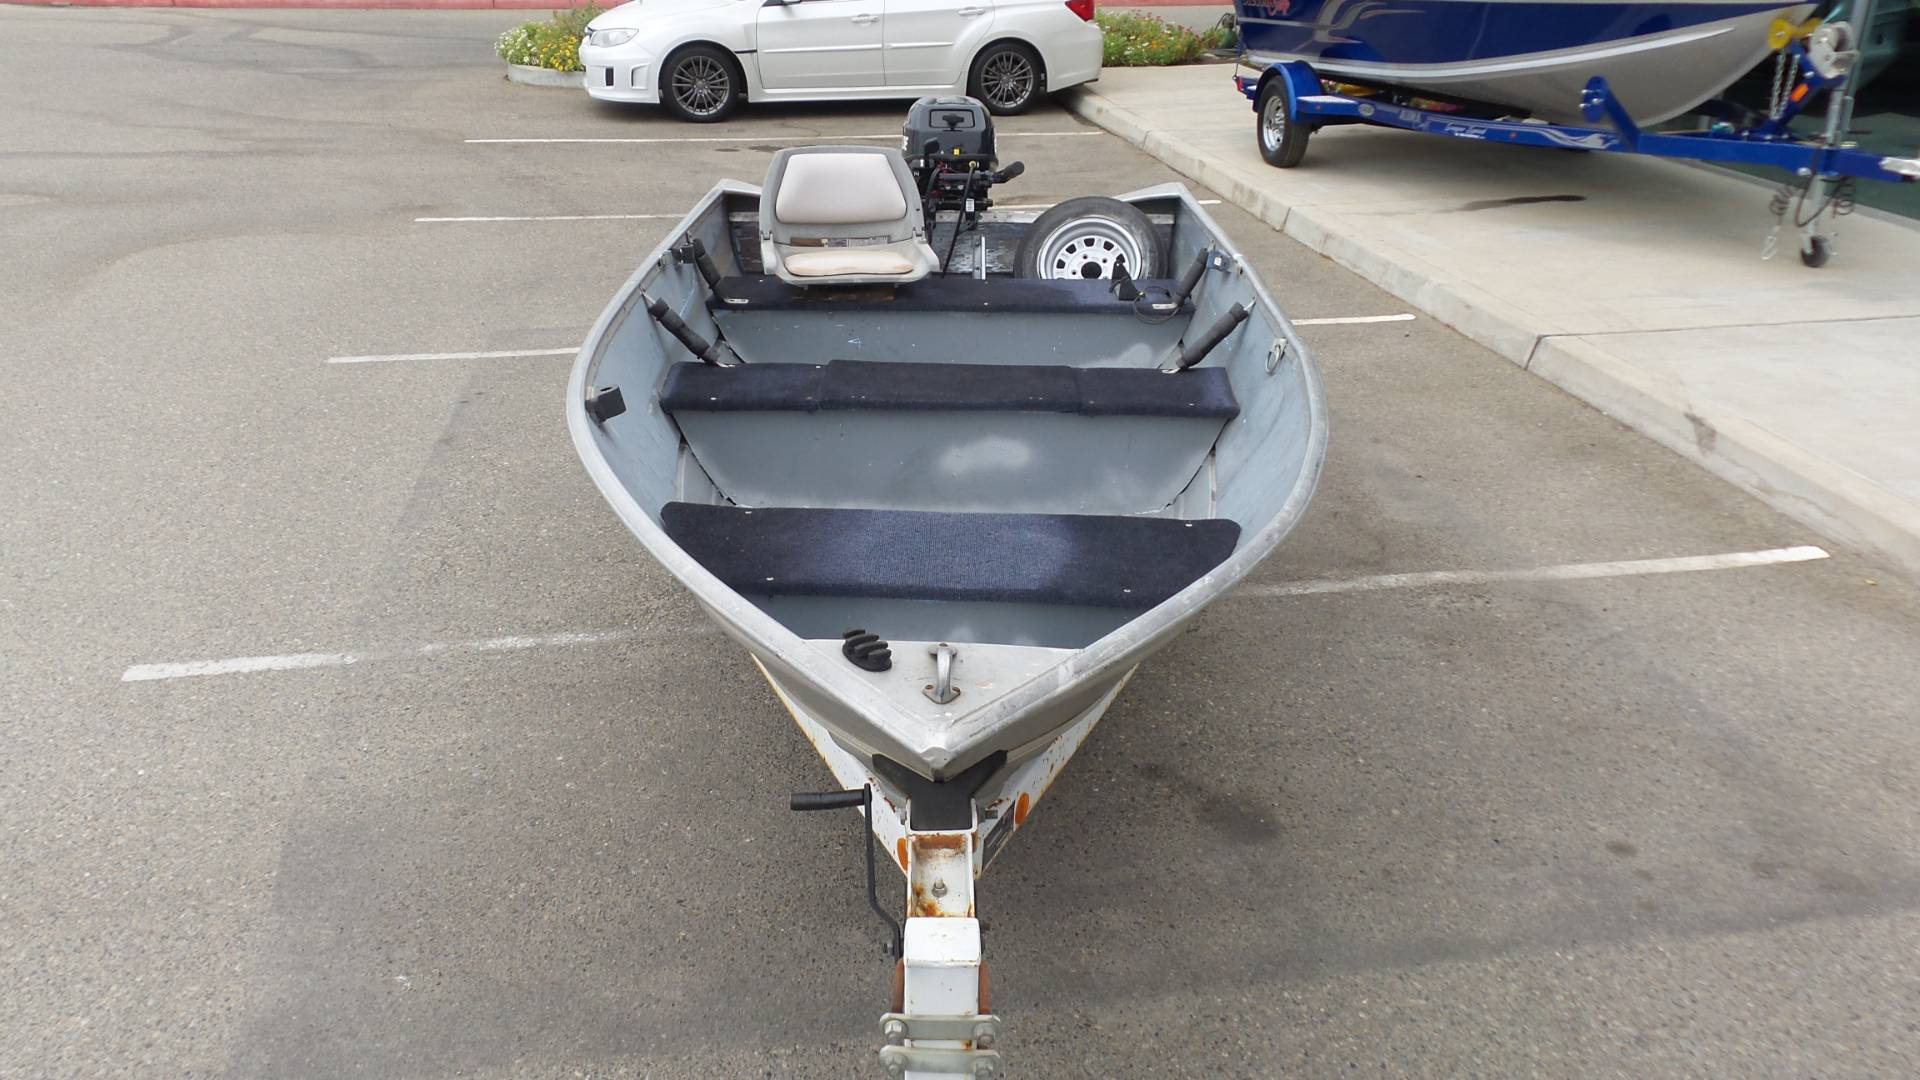 1976 Gregor 14 Ft Fishing Boat in Madera, California